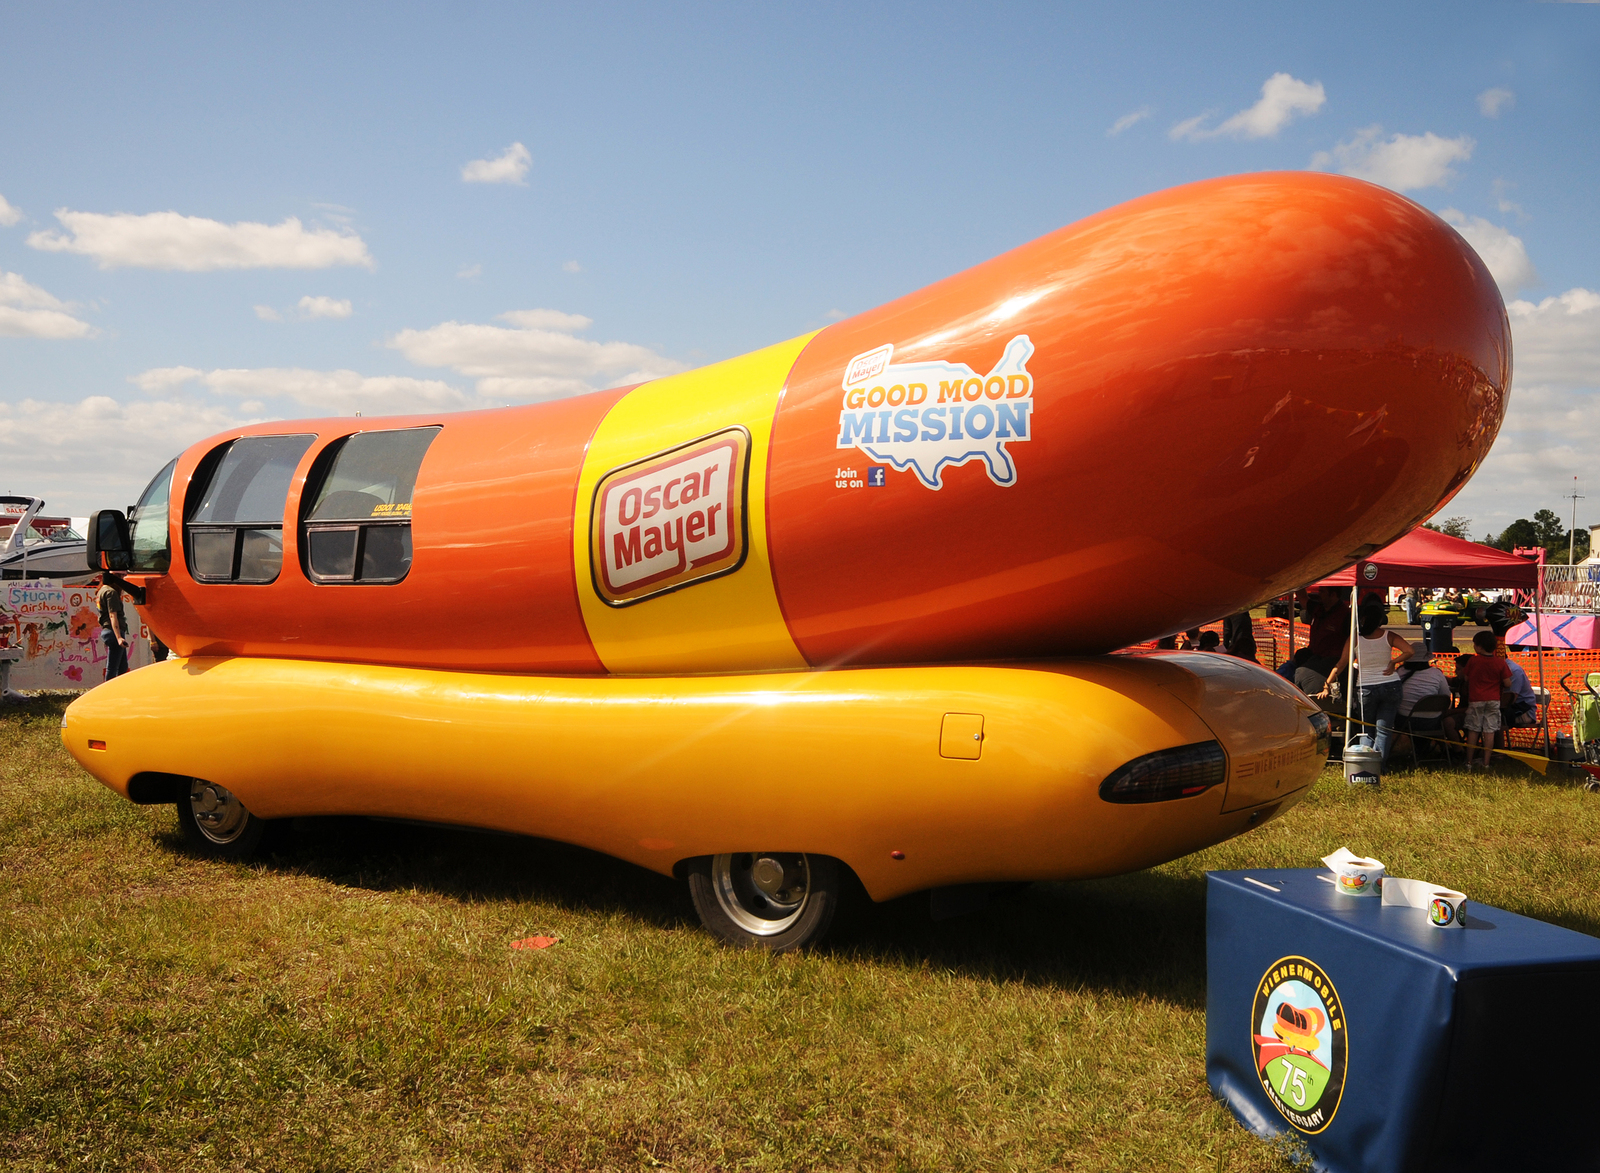 A Weinermobile Visits Milwaukee No Baloney besides Can 20you 20find  20The 201967 20Batmobile  20the 20Oscar 20Mayer 20Weinermobile  20a 20hearst moreover 181172805424 in addition Index also Gumby Pokey Bendy Figures. on oscar mayer wienermobile whistle